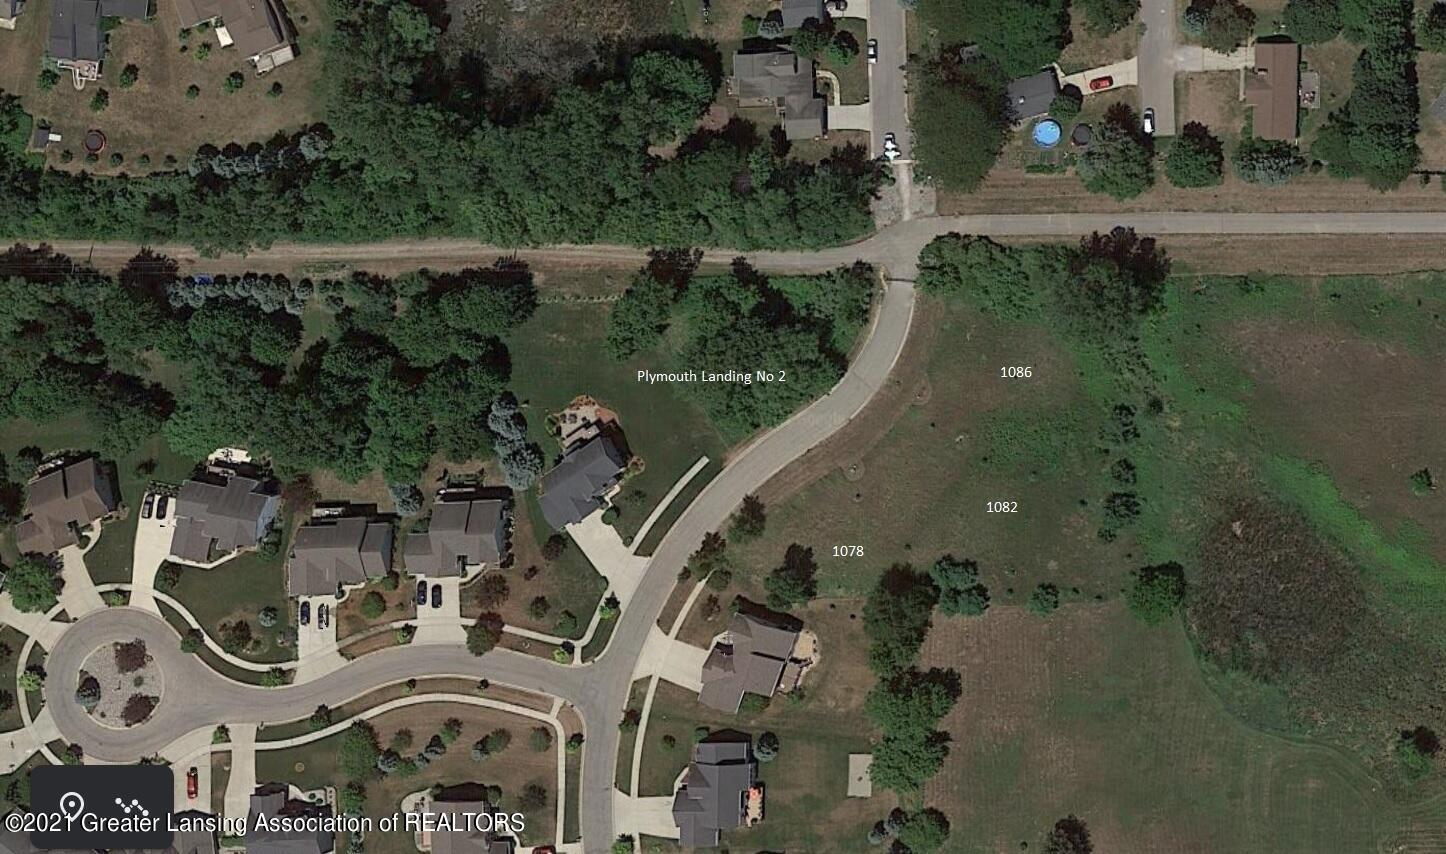 1078 Foxborough Dr - 3 Lots available - 1